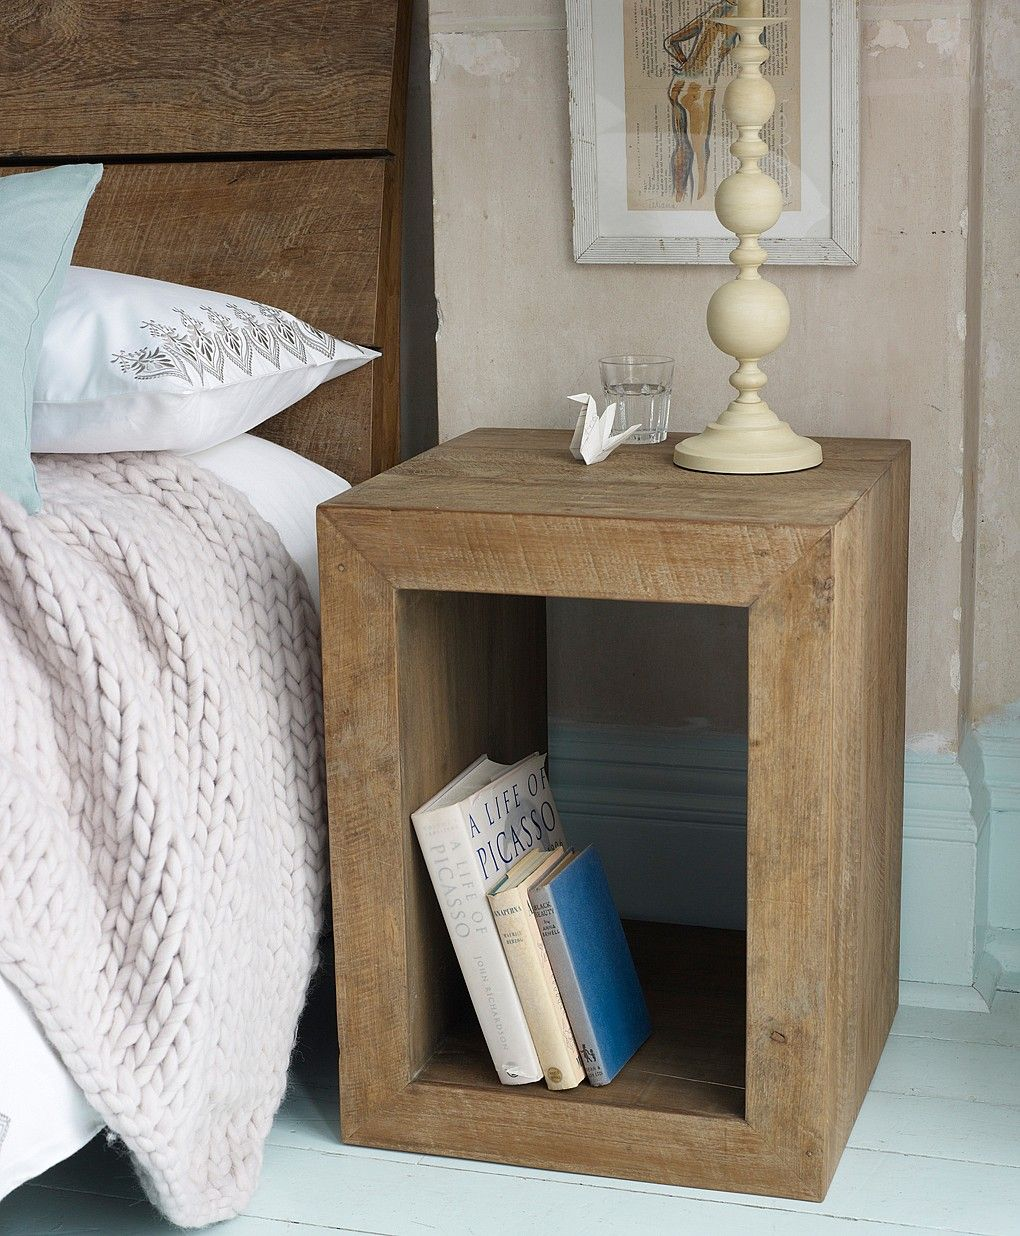 Best modern bedside tables - 1000 Images About Bedside Tables On Pinterest Modern Bedside Table Side Tables And Tables 1000